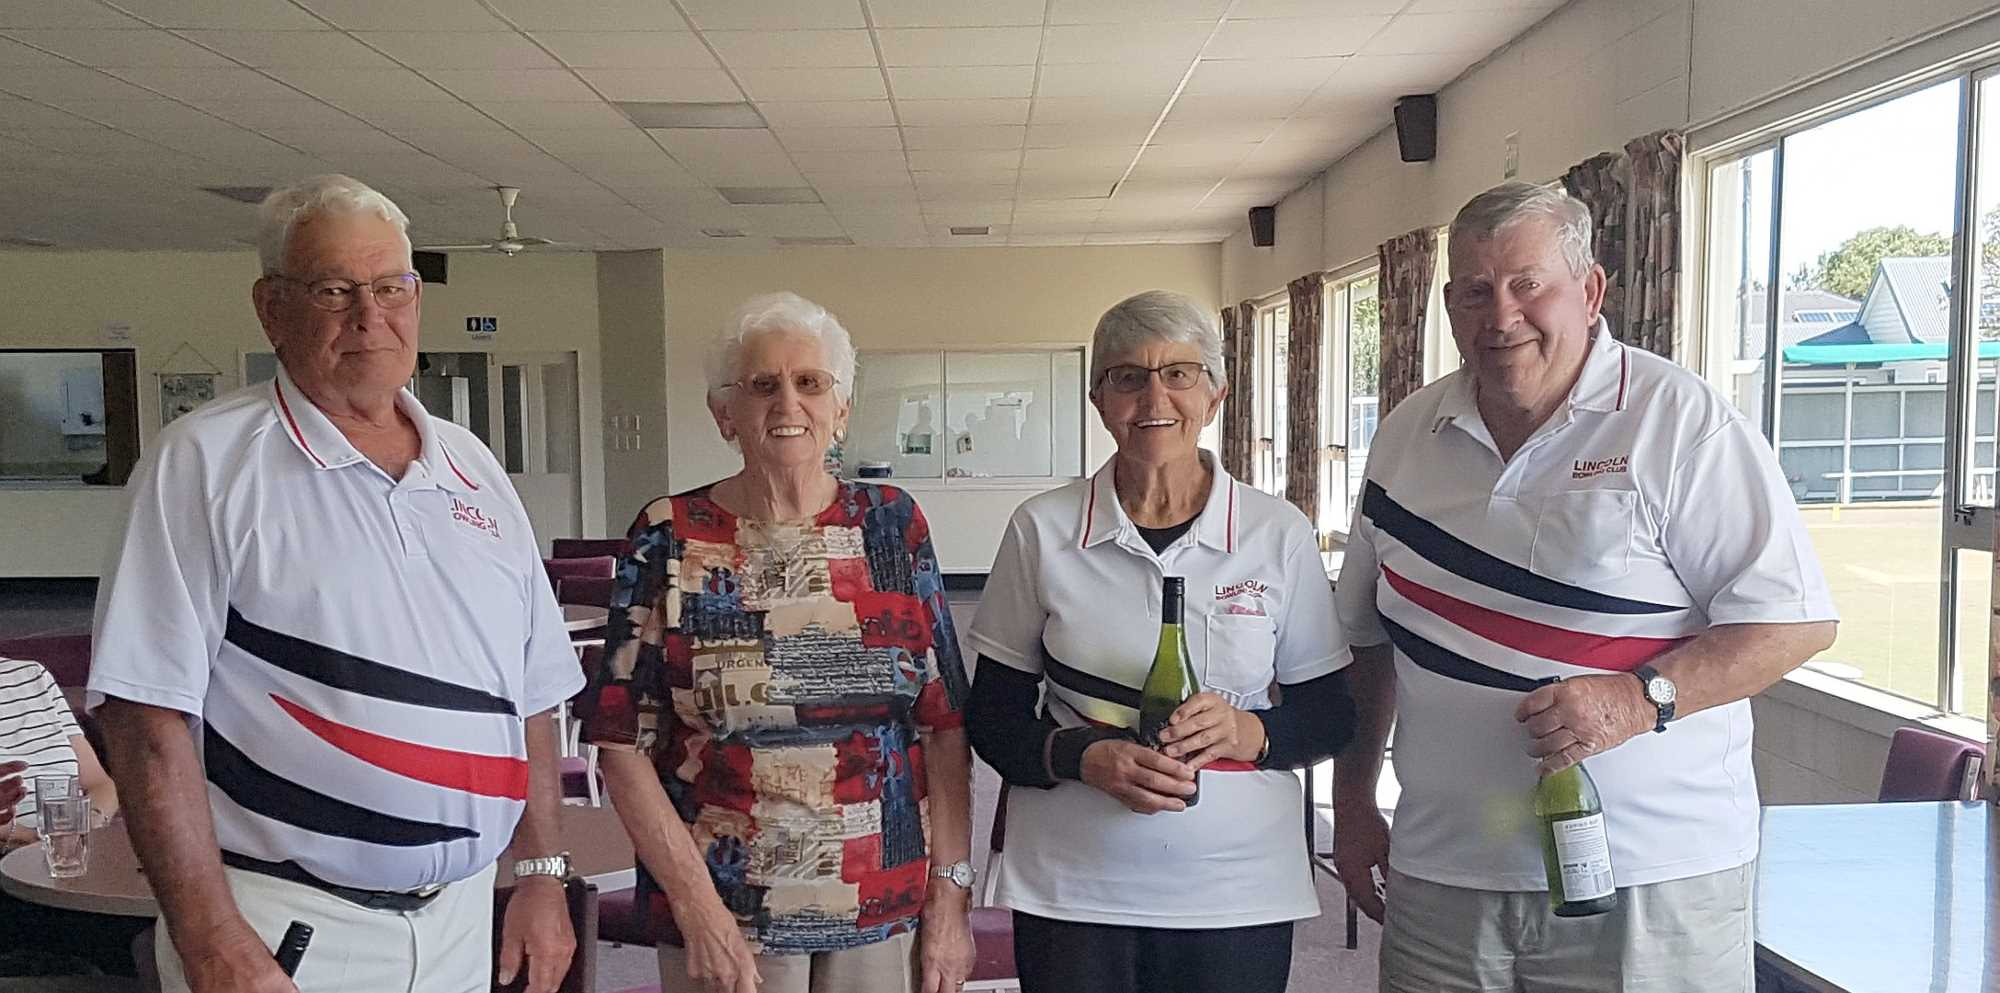 Over 70's and 80' Tournament - The Over 70's Triples Winners